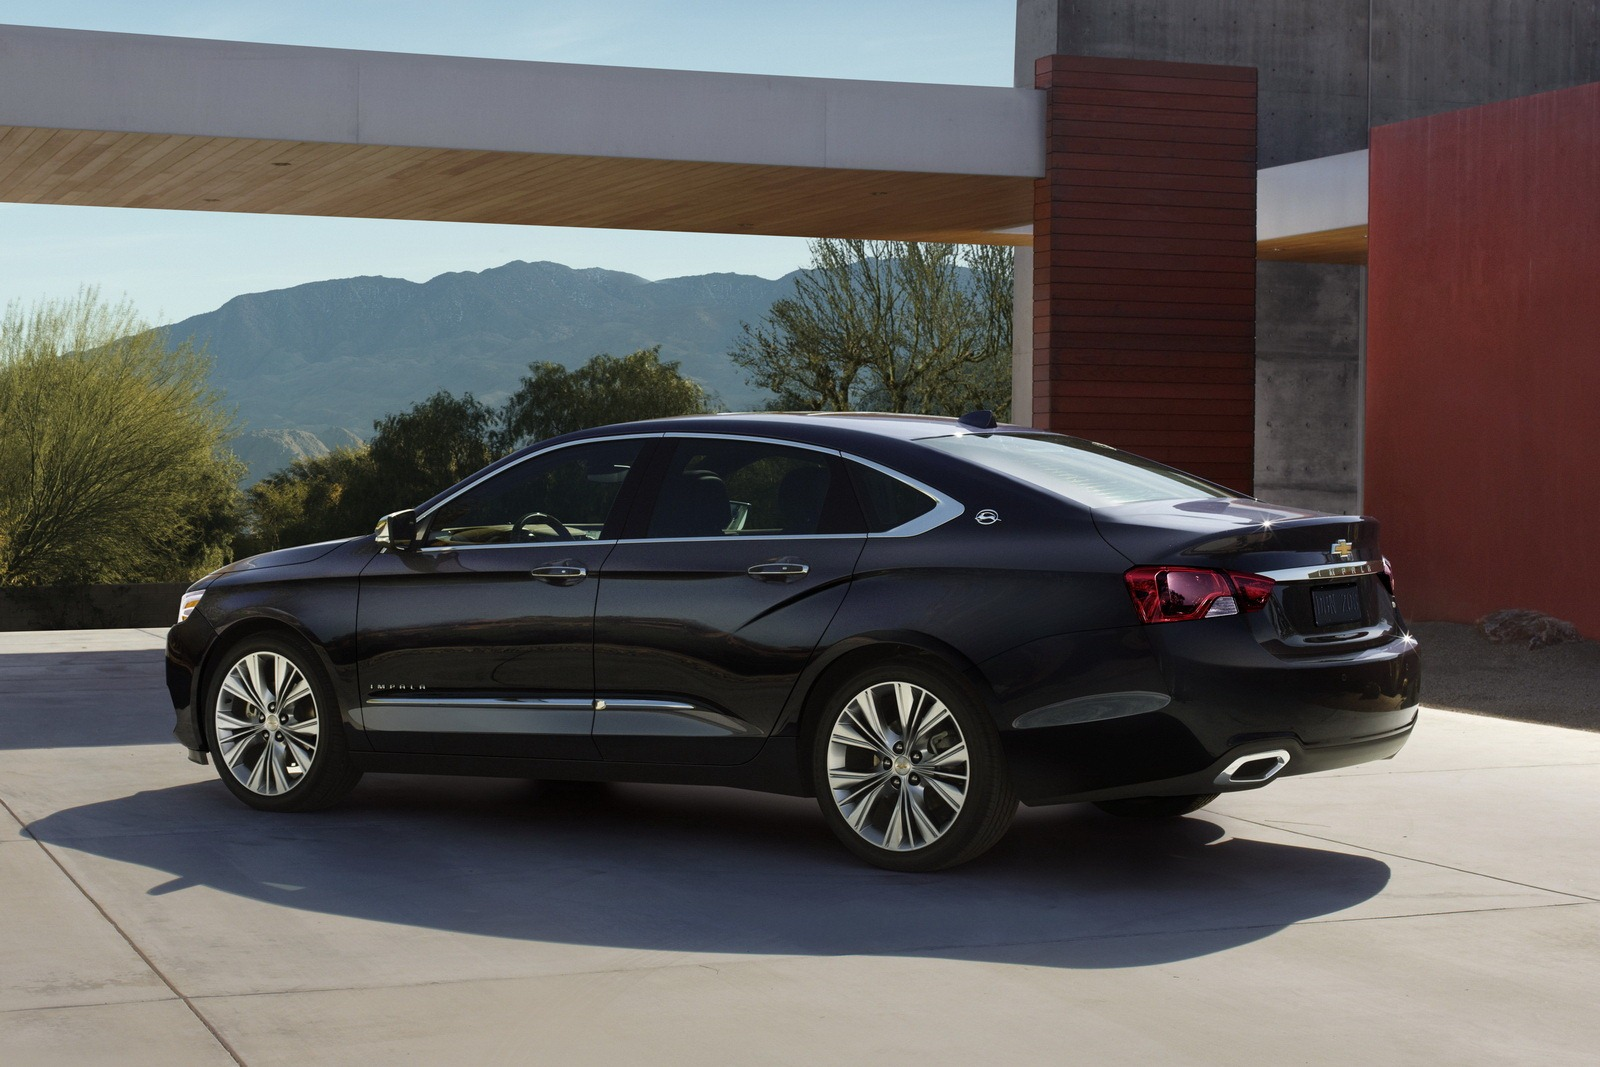 AUTO SHOW: Chevrolet To Shake Up The Segment With All New 2014 Impala